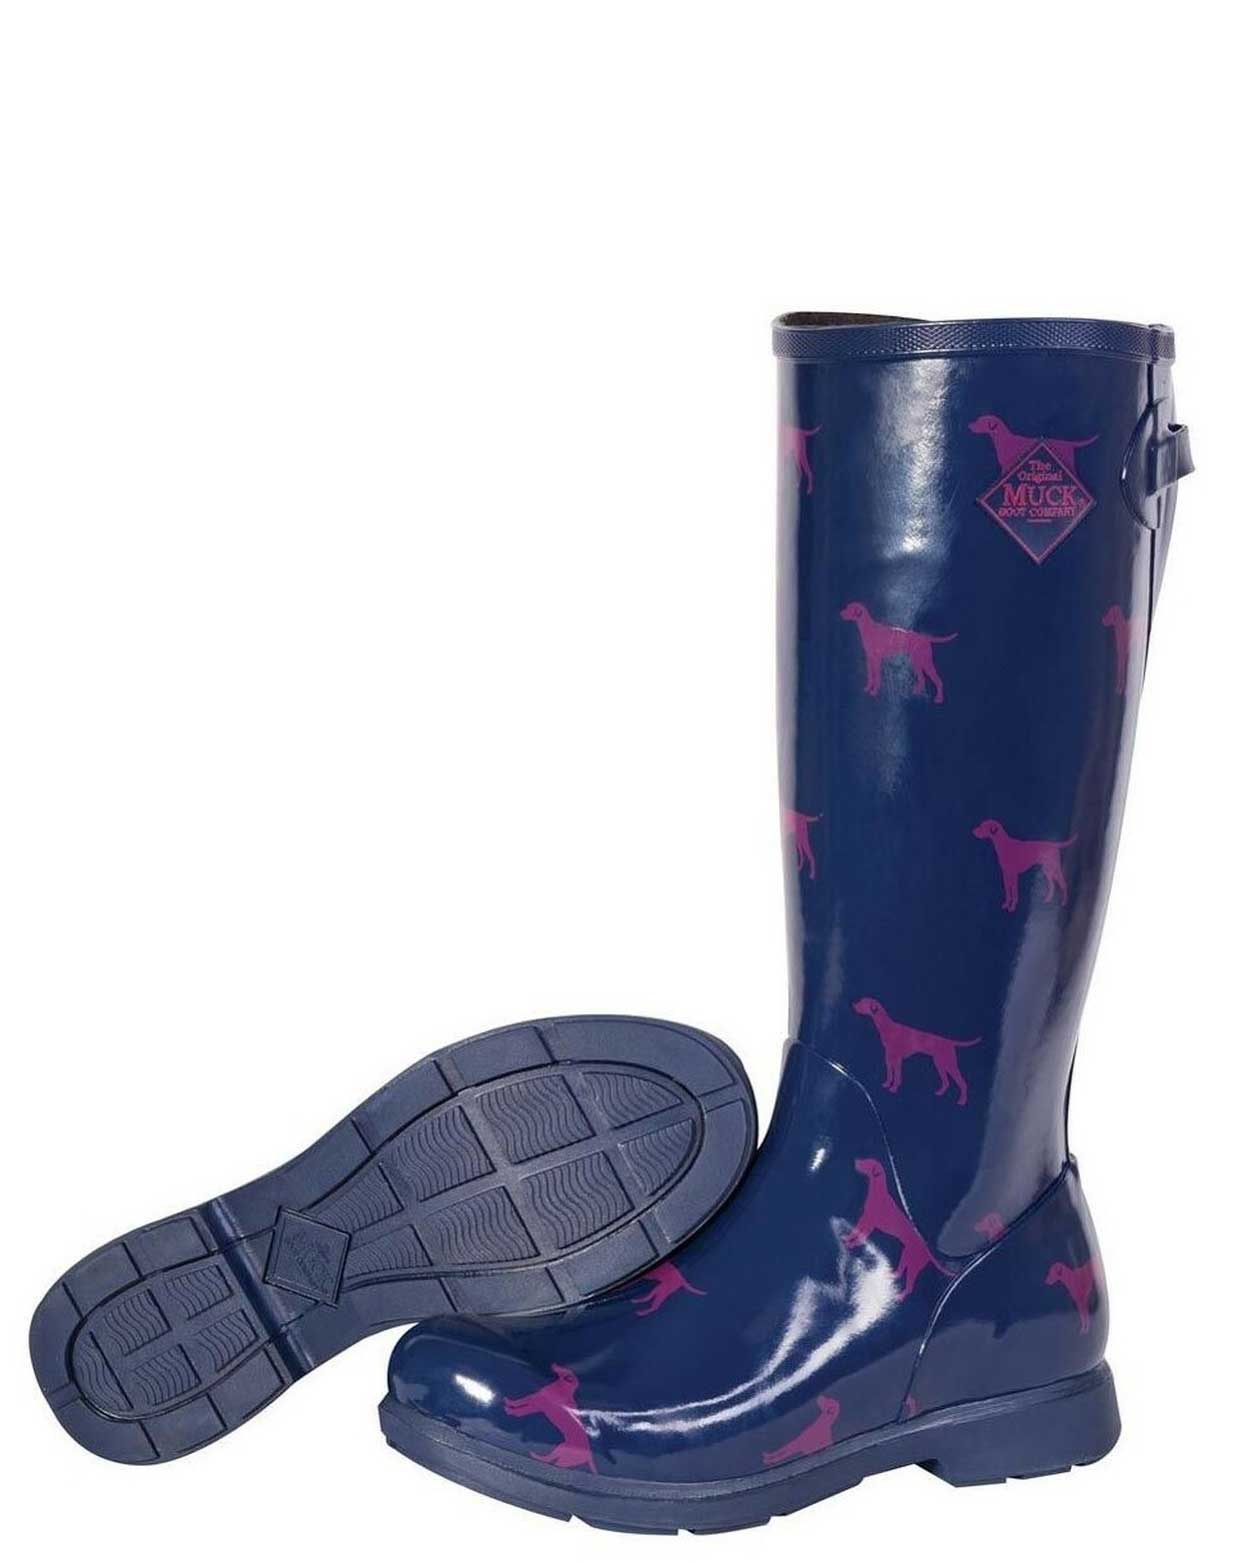 Bergen Blue Dog Tall Gumboots